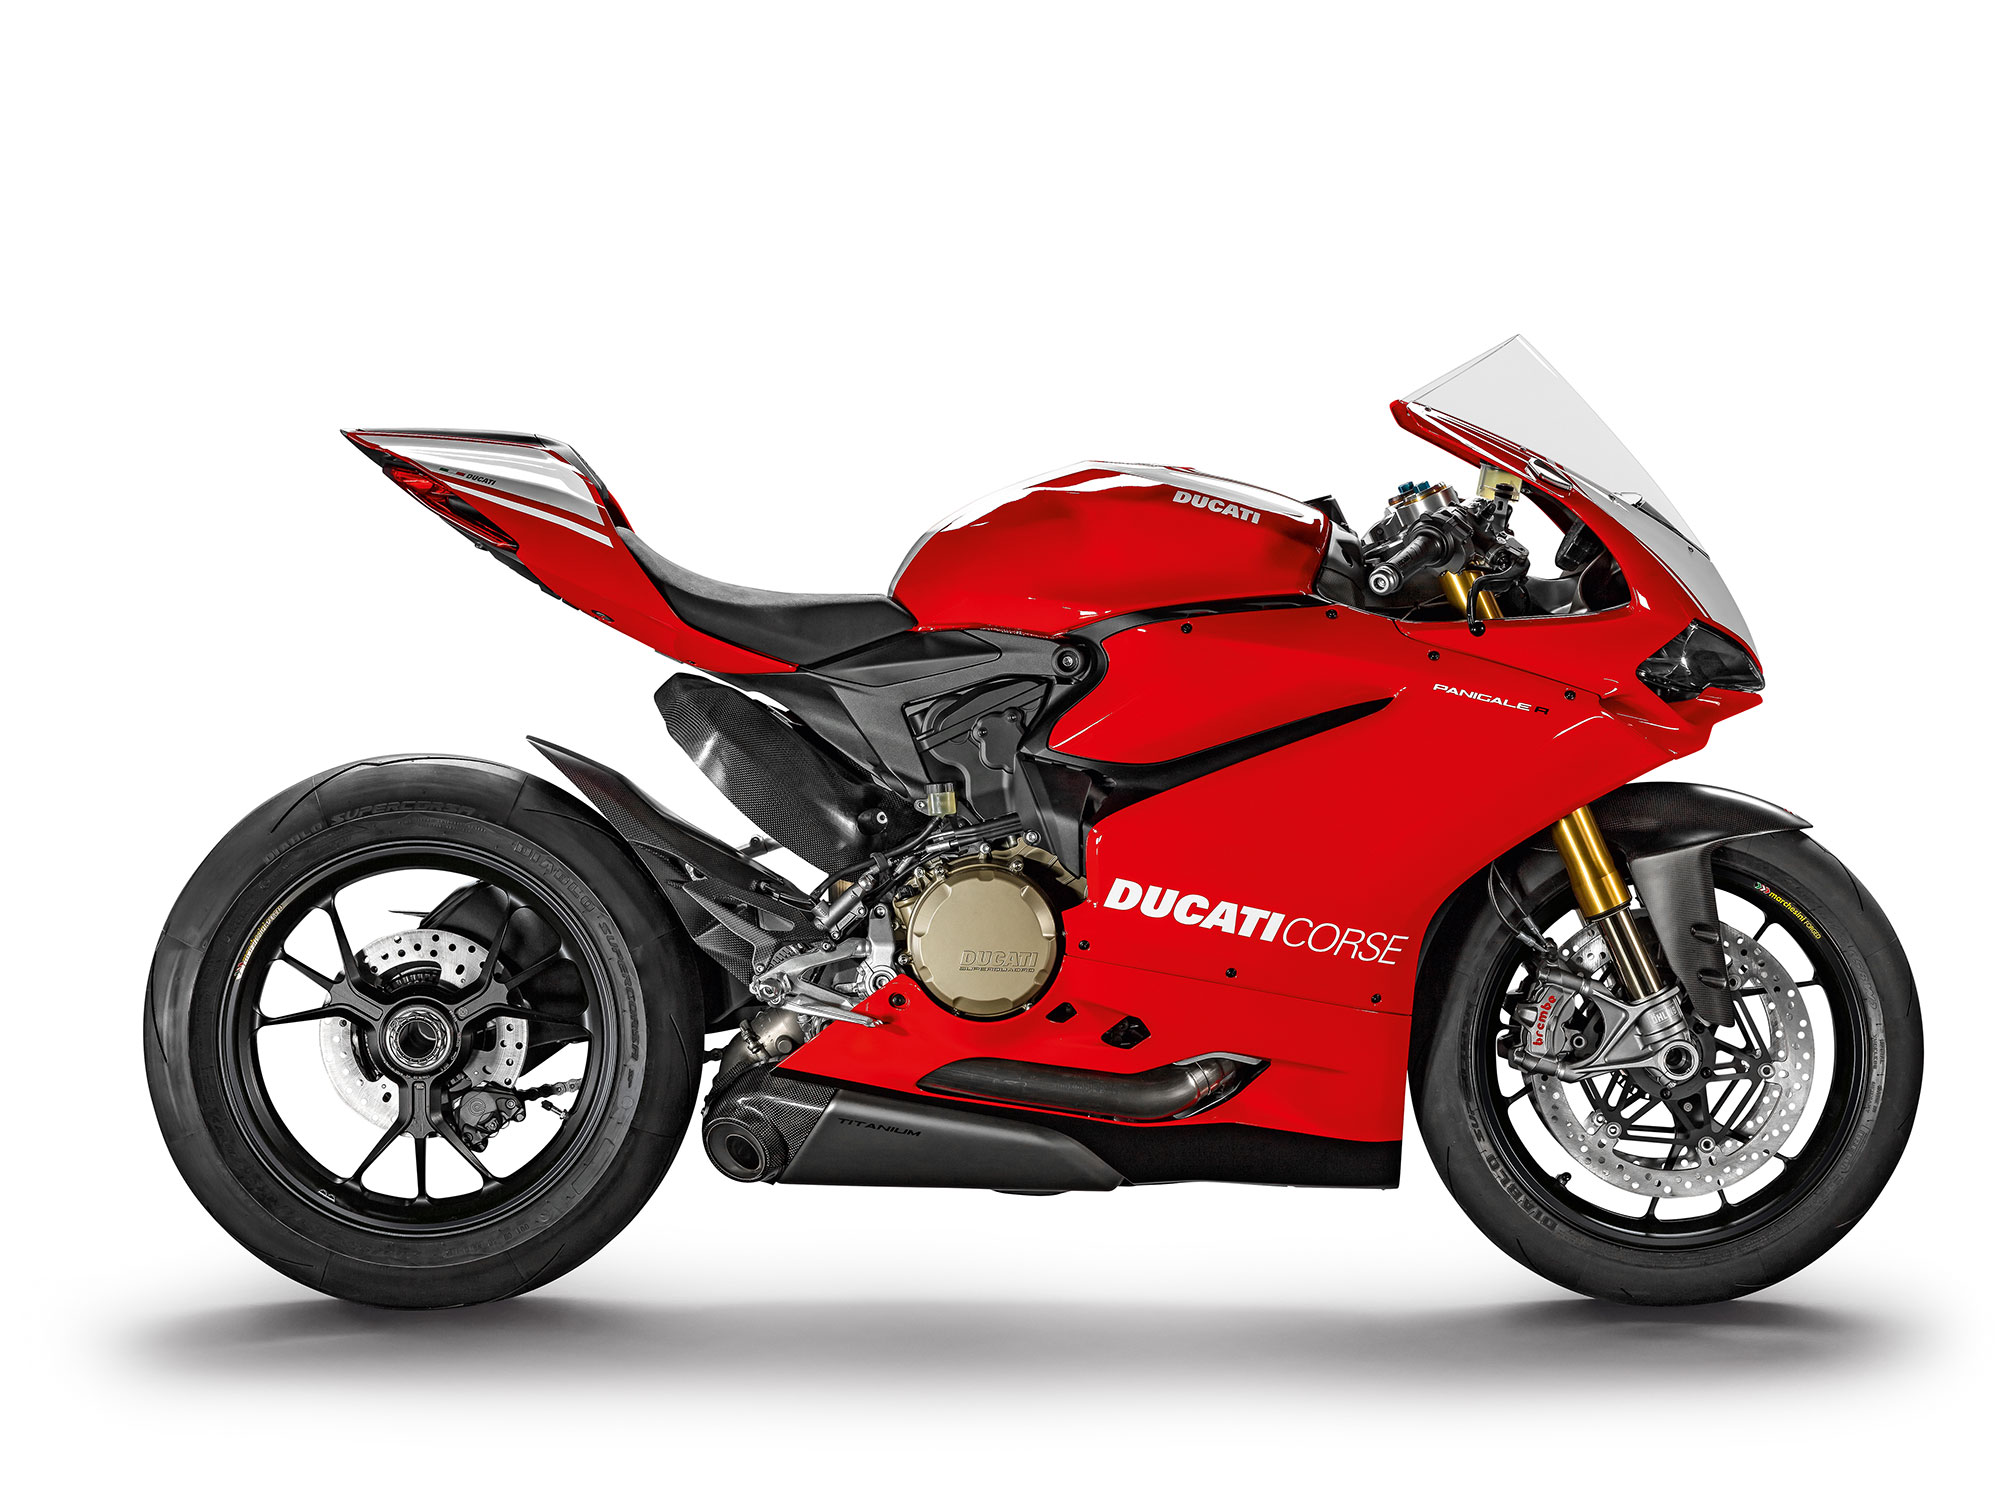 Ducati Panigale R Review